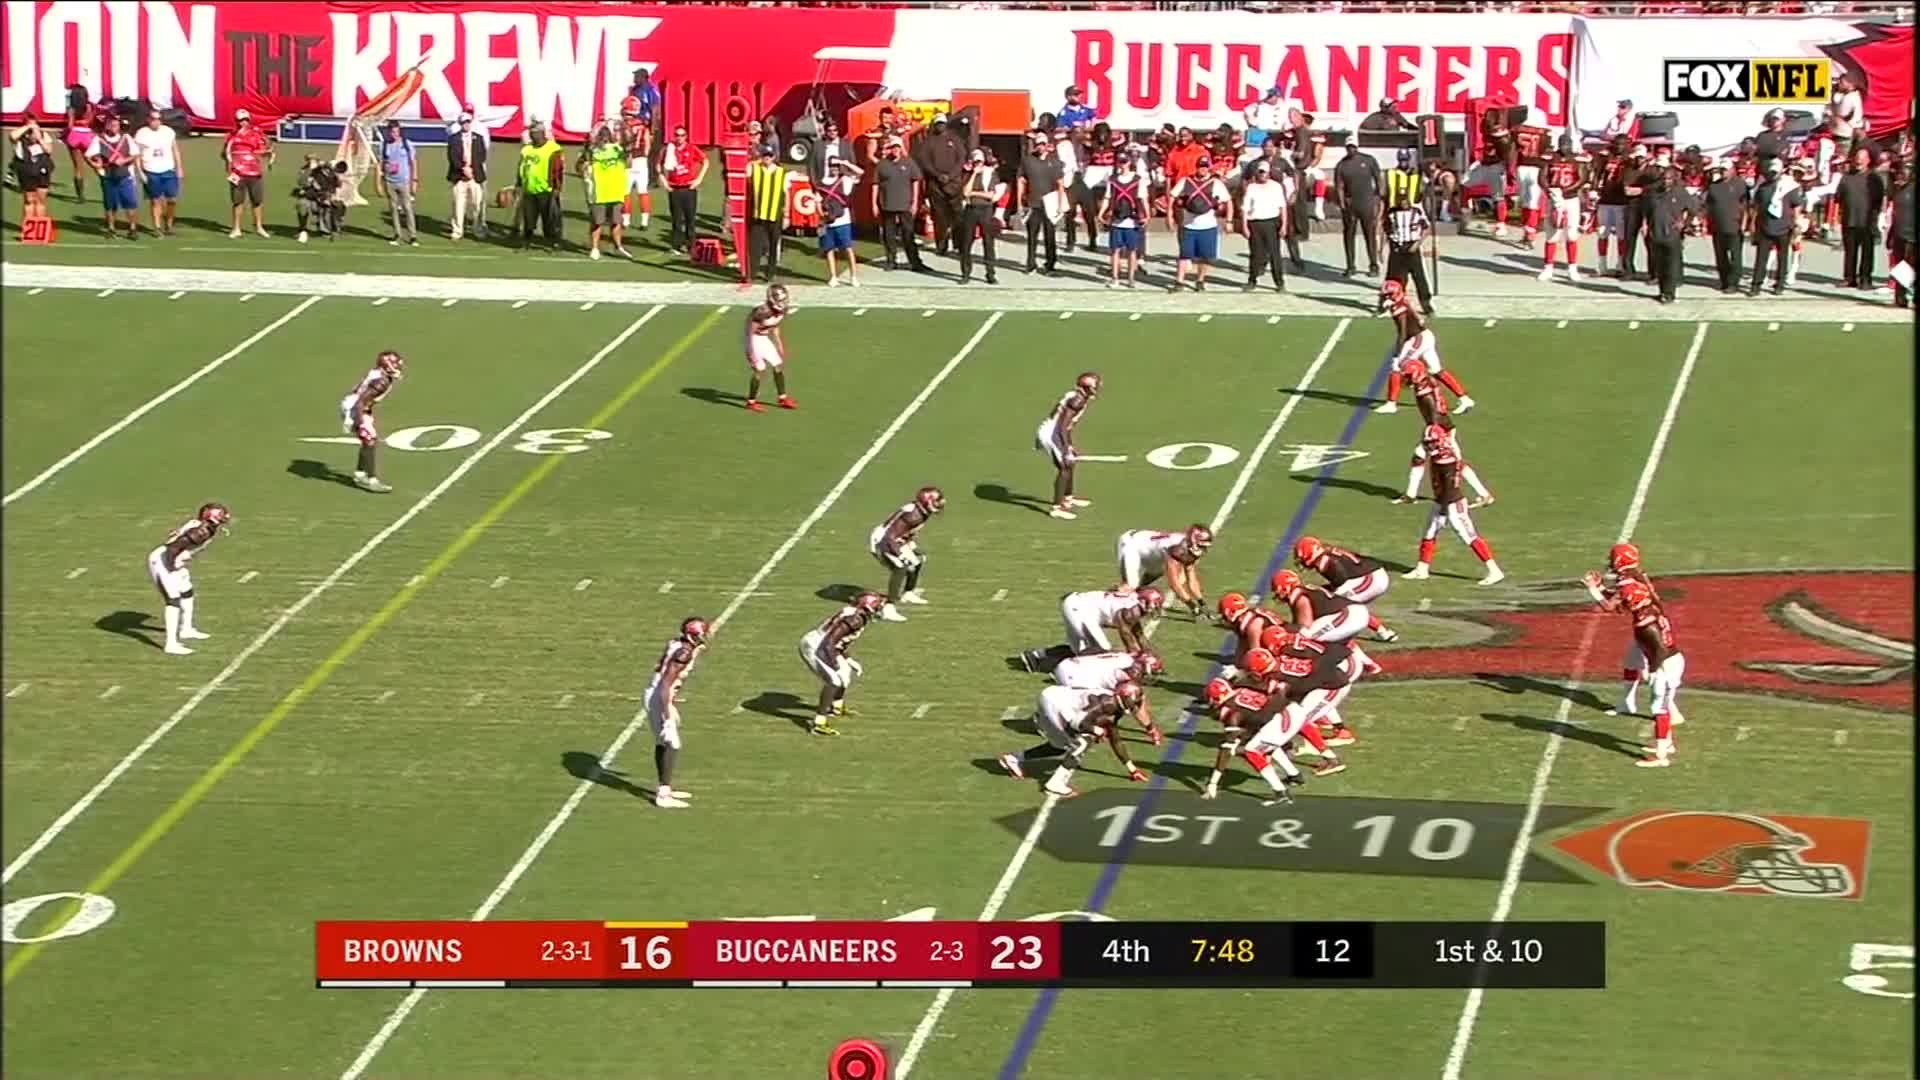 American Football, Football, NFL, afc, defense, game, highlight, highlights, nfc, offense, Browns vs. Buccaneers Week 7 Highlights | NFL 2018 GIFs